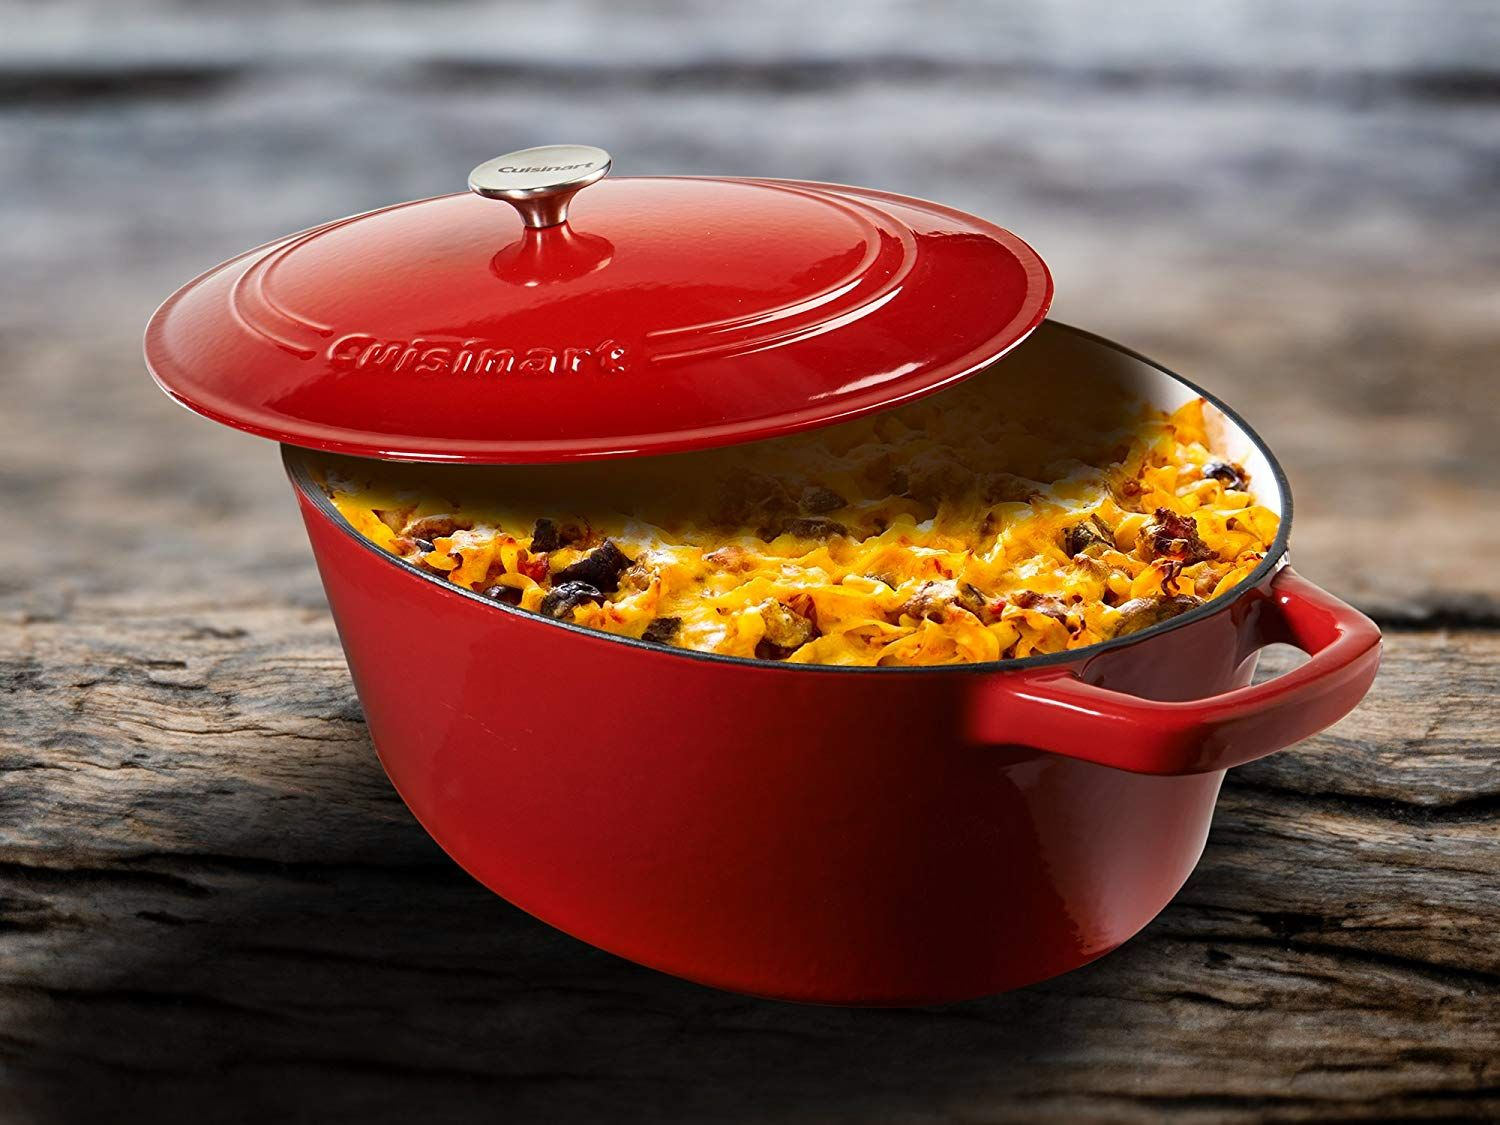 Cuisinart Casserole Dishes And Frying Pans Are 46 Percent Off Today Only